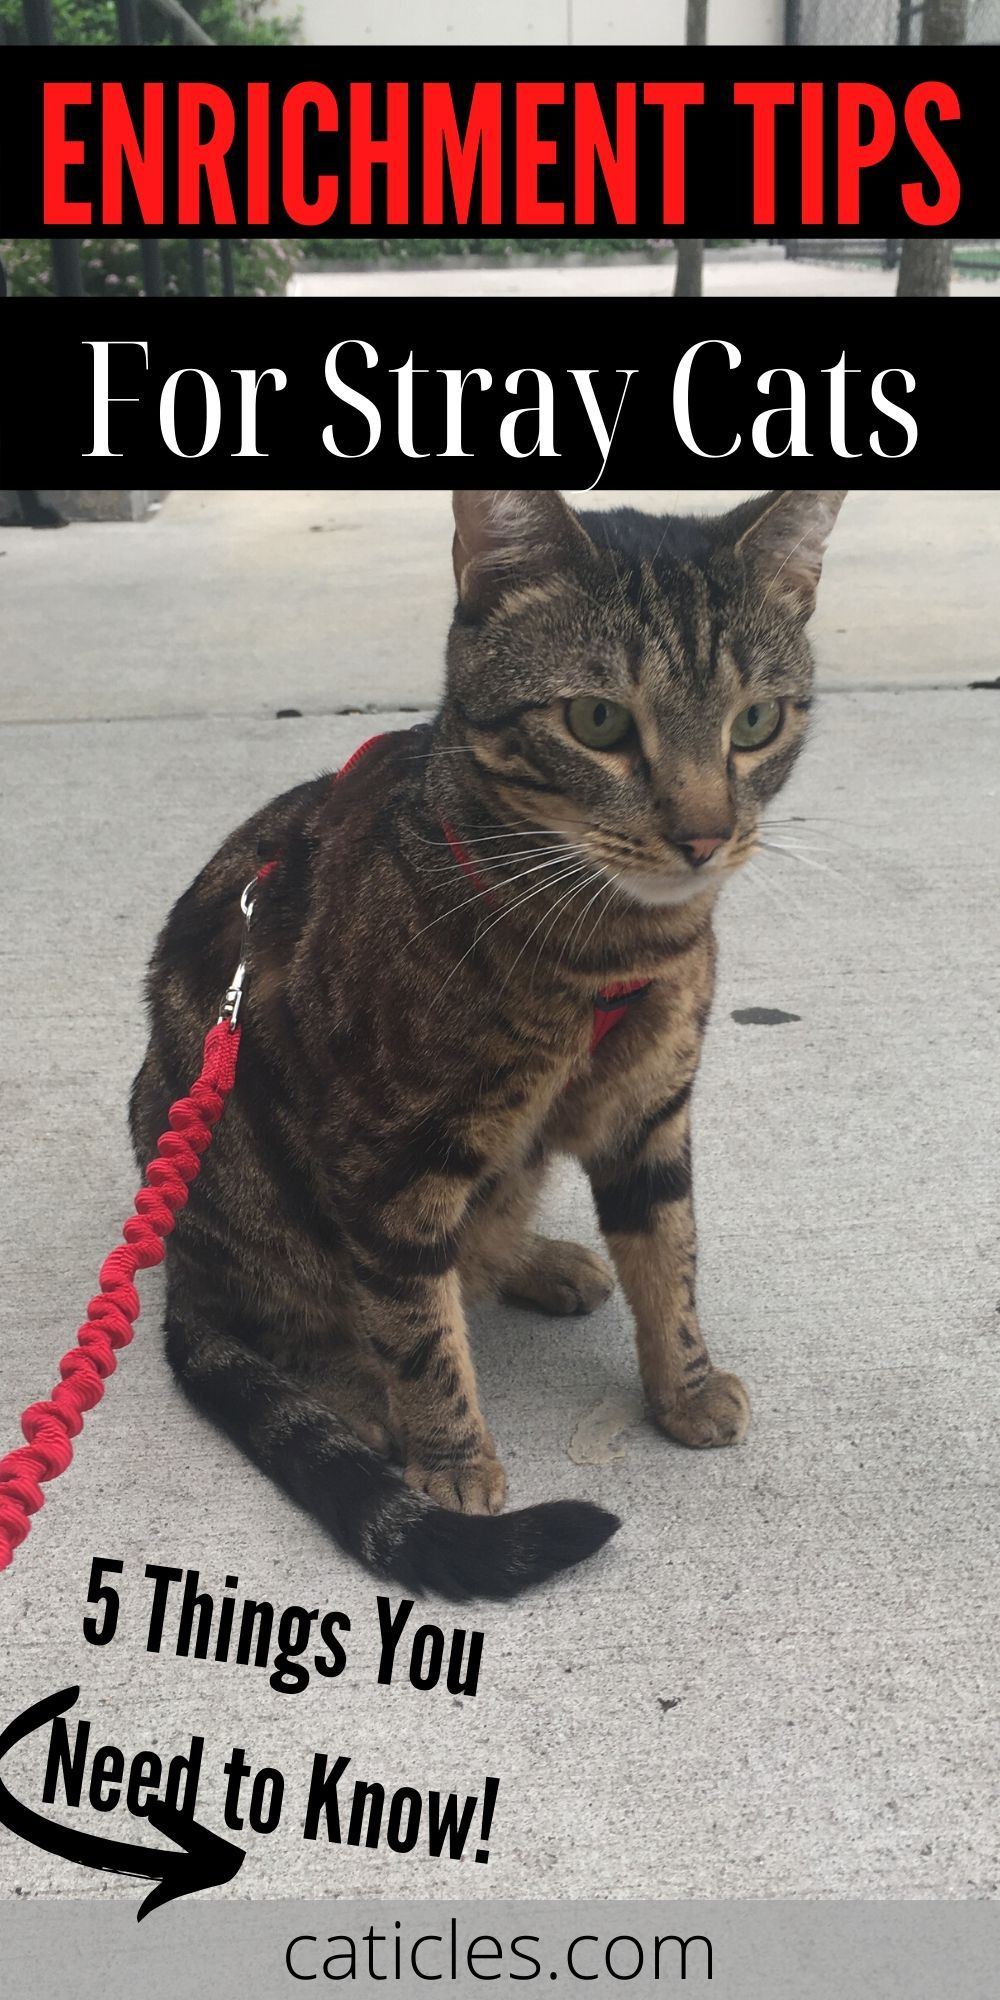 A Stray Cat Has Adopted Me 6 Things You Need To Do Cats Stray Cat Taking Cat